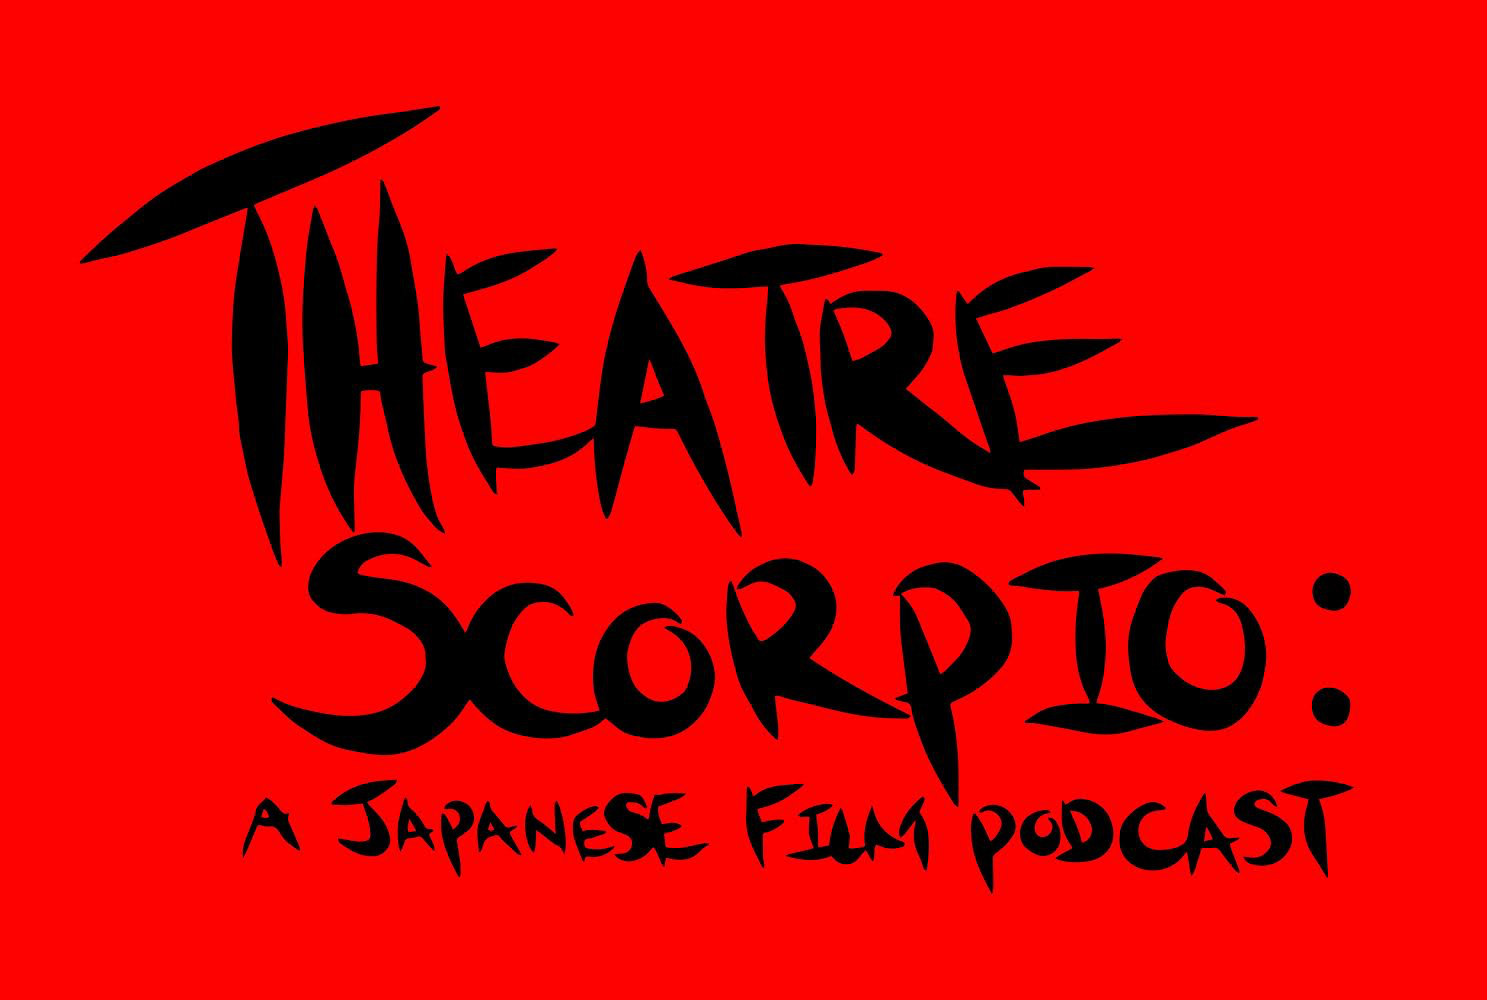 Theatre Scorpio:  A Japanese Film Podcast